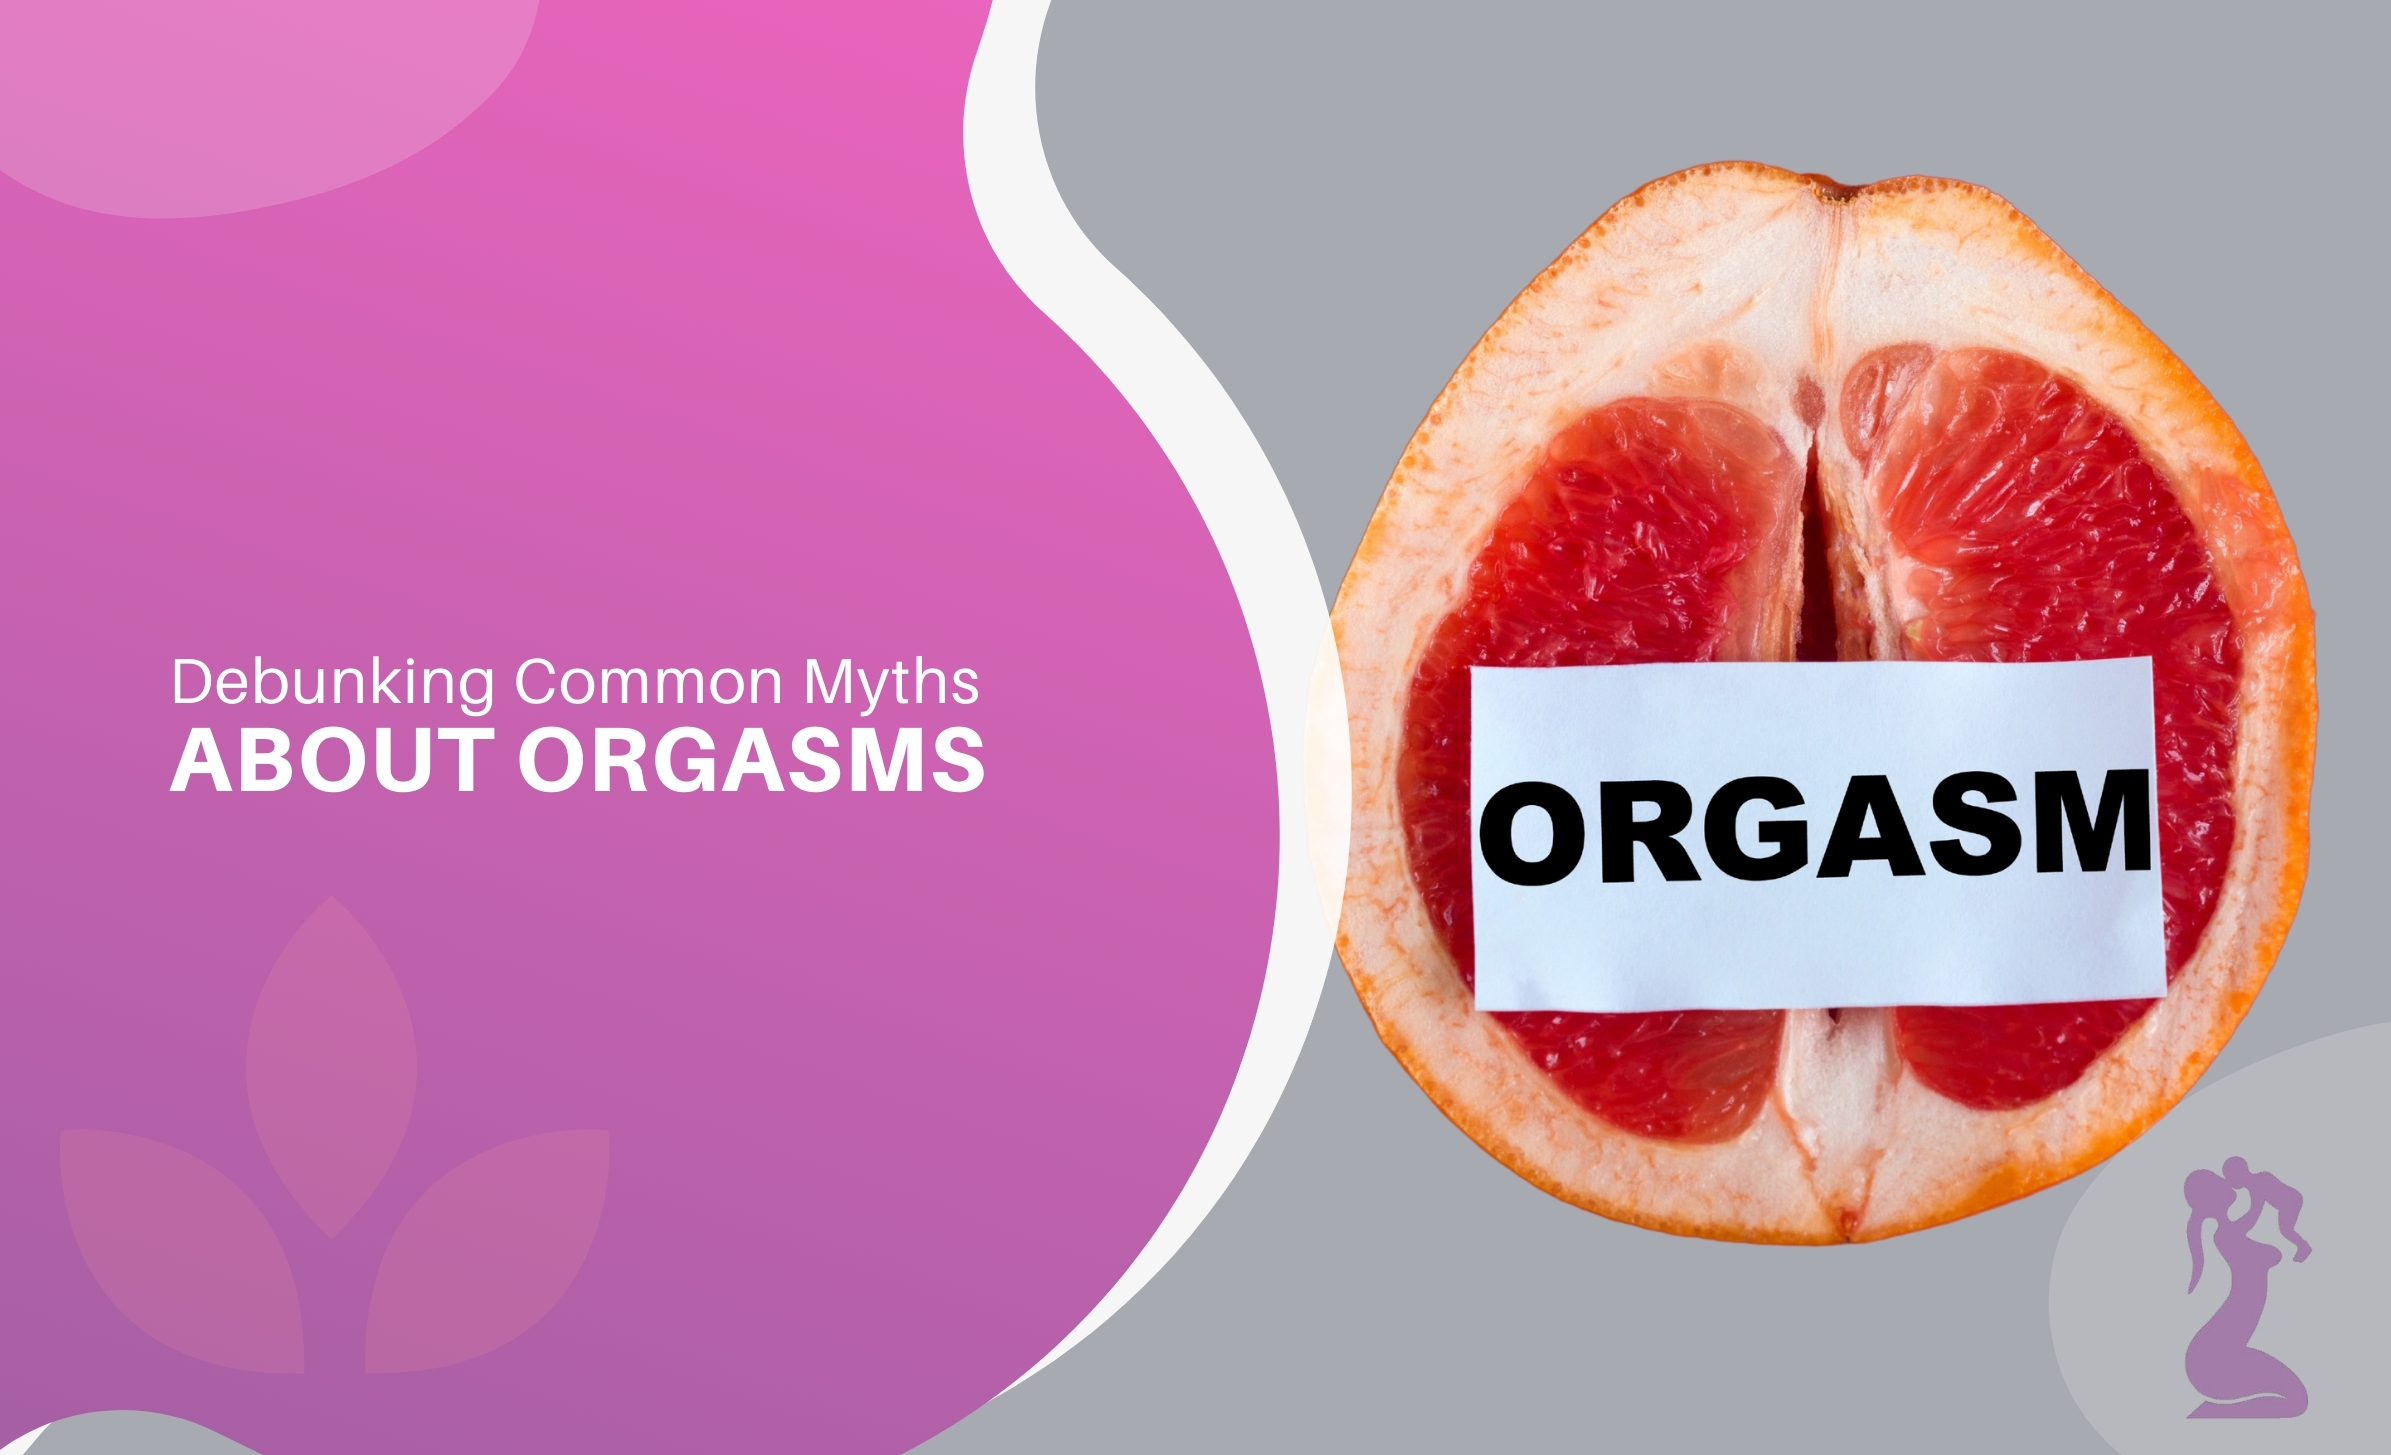 debunking-common-myths-about-orgasms